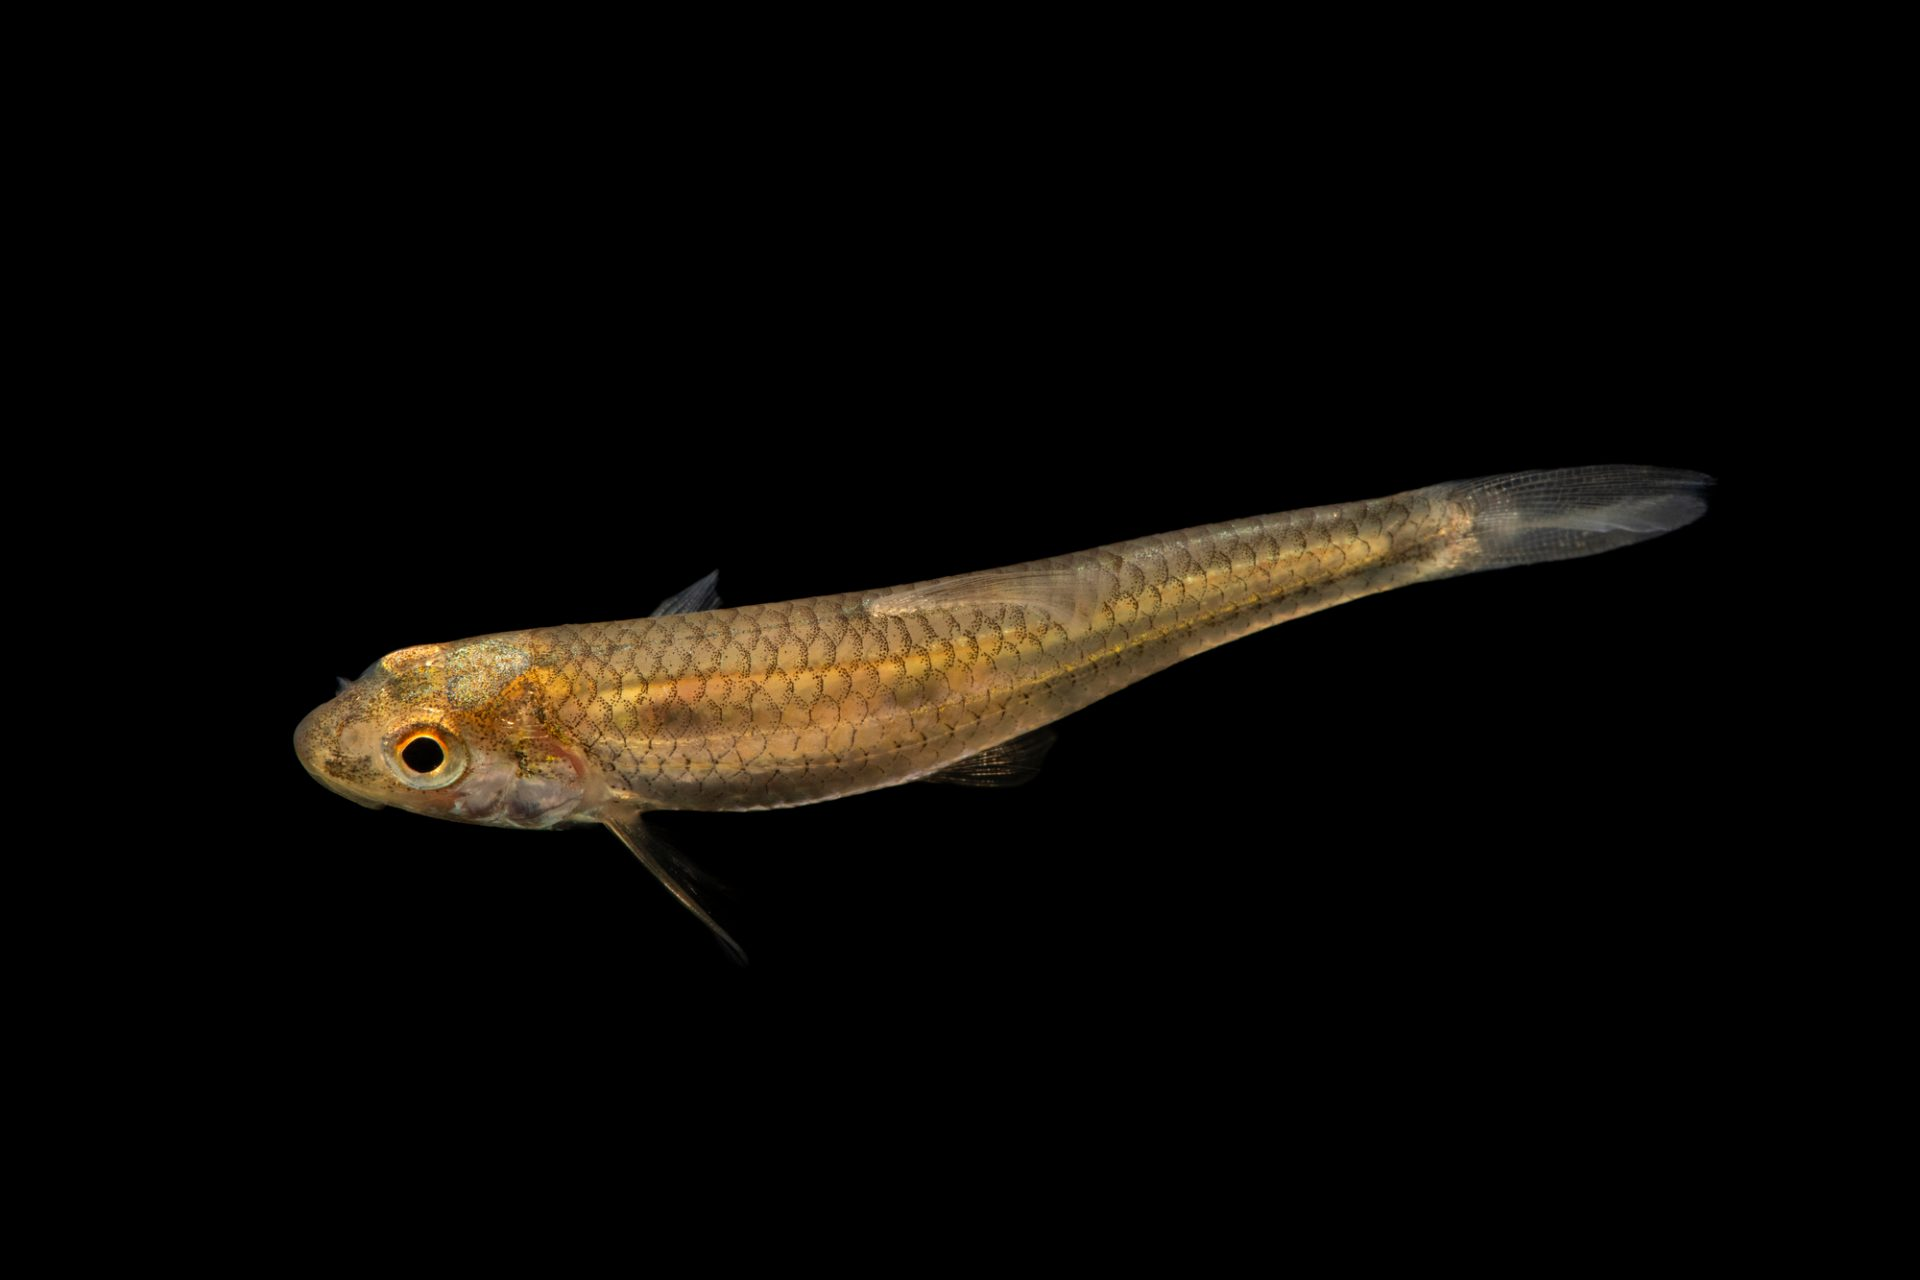 Photo: An orangefin shiner (Notropis ammophilus) at the Auburn University Natural History Museum.